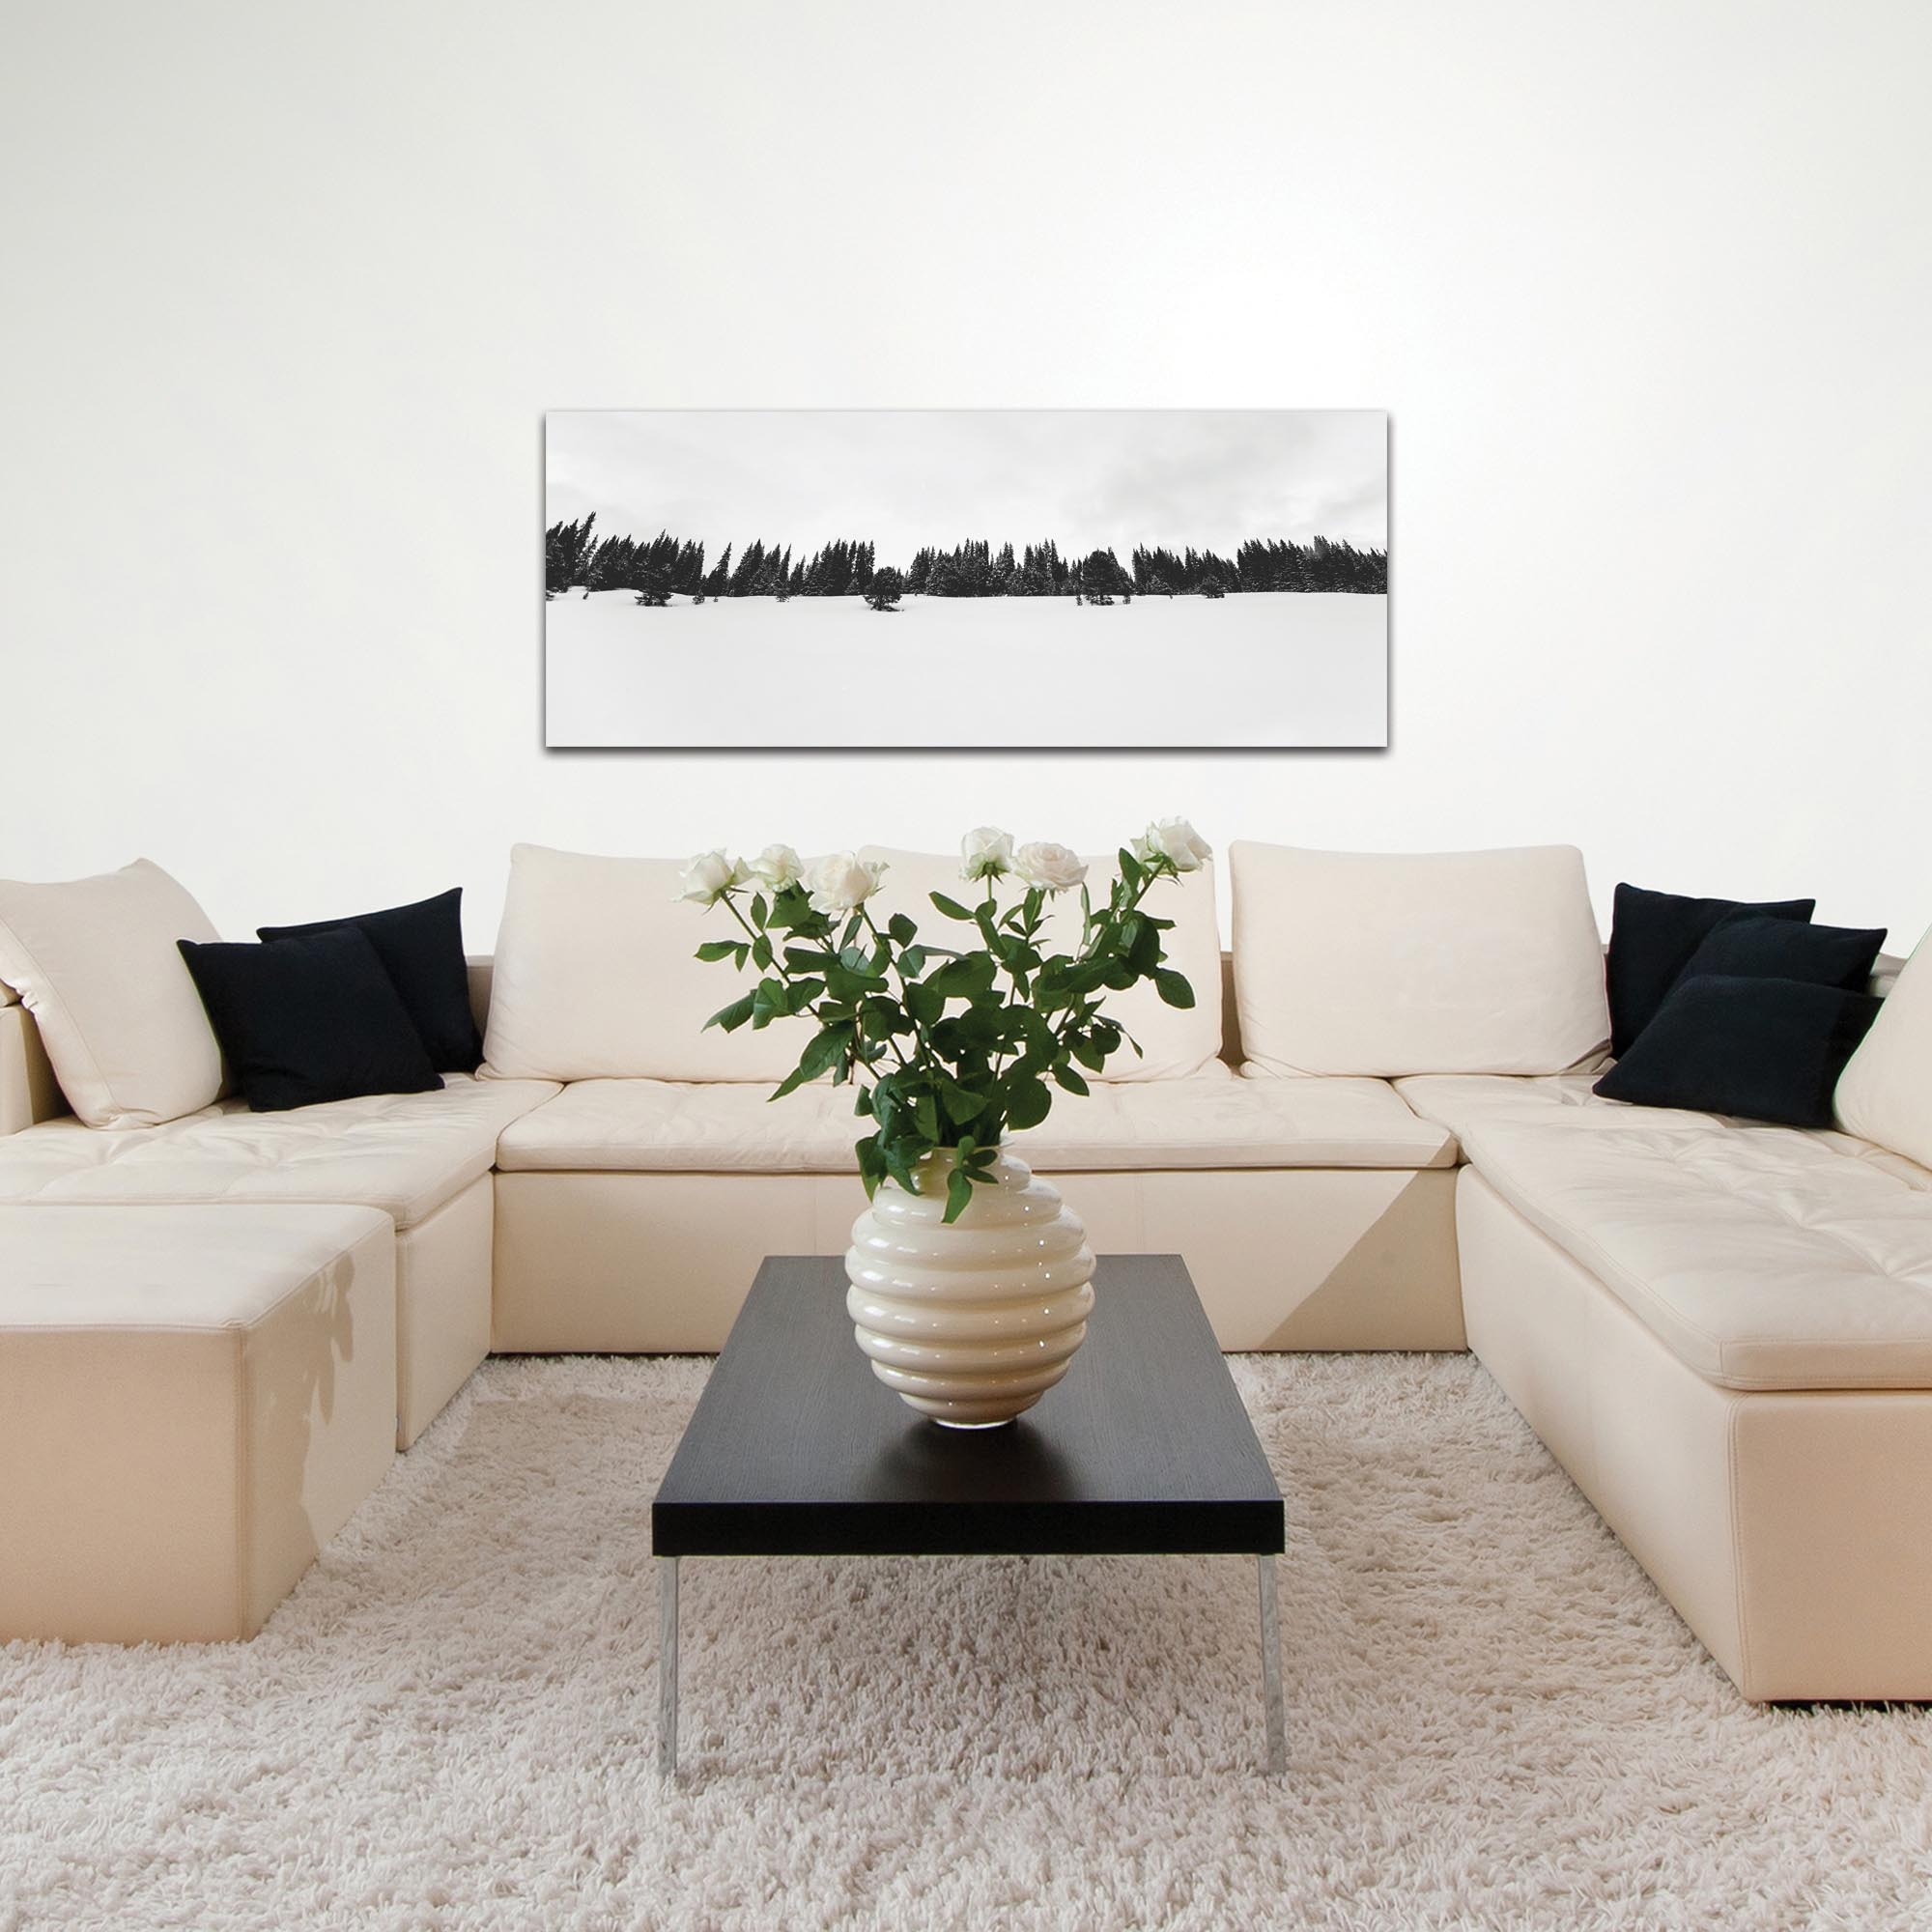 Landscape Photography 'Life Line' - Winter Trees Art on Metal or Plexiglass - Lifestyle View